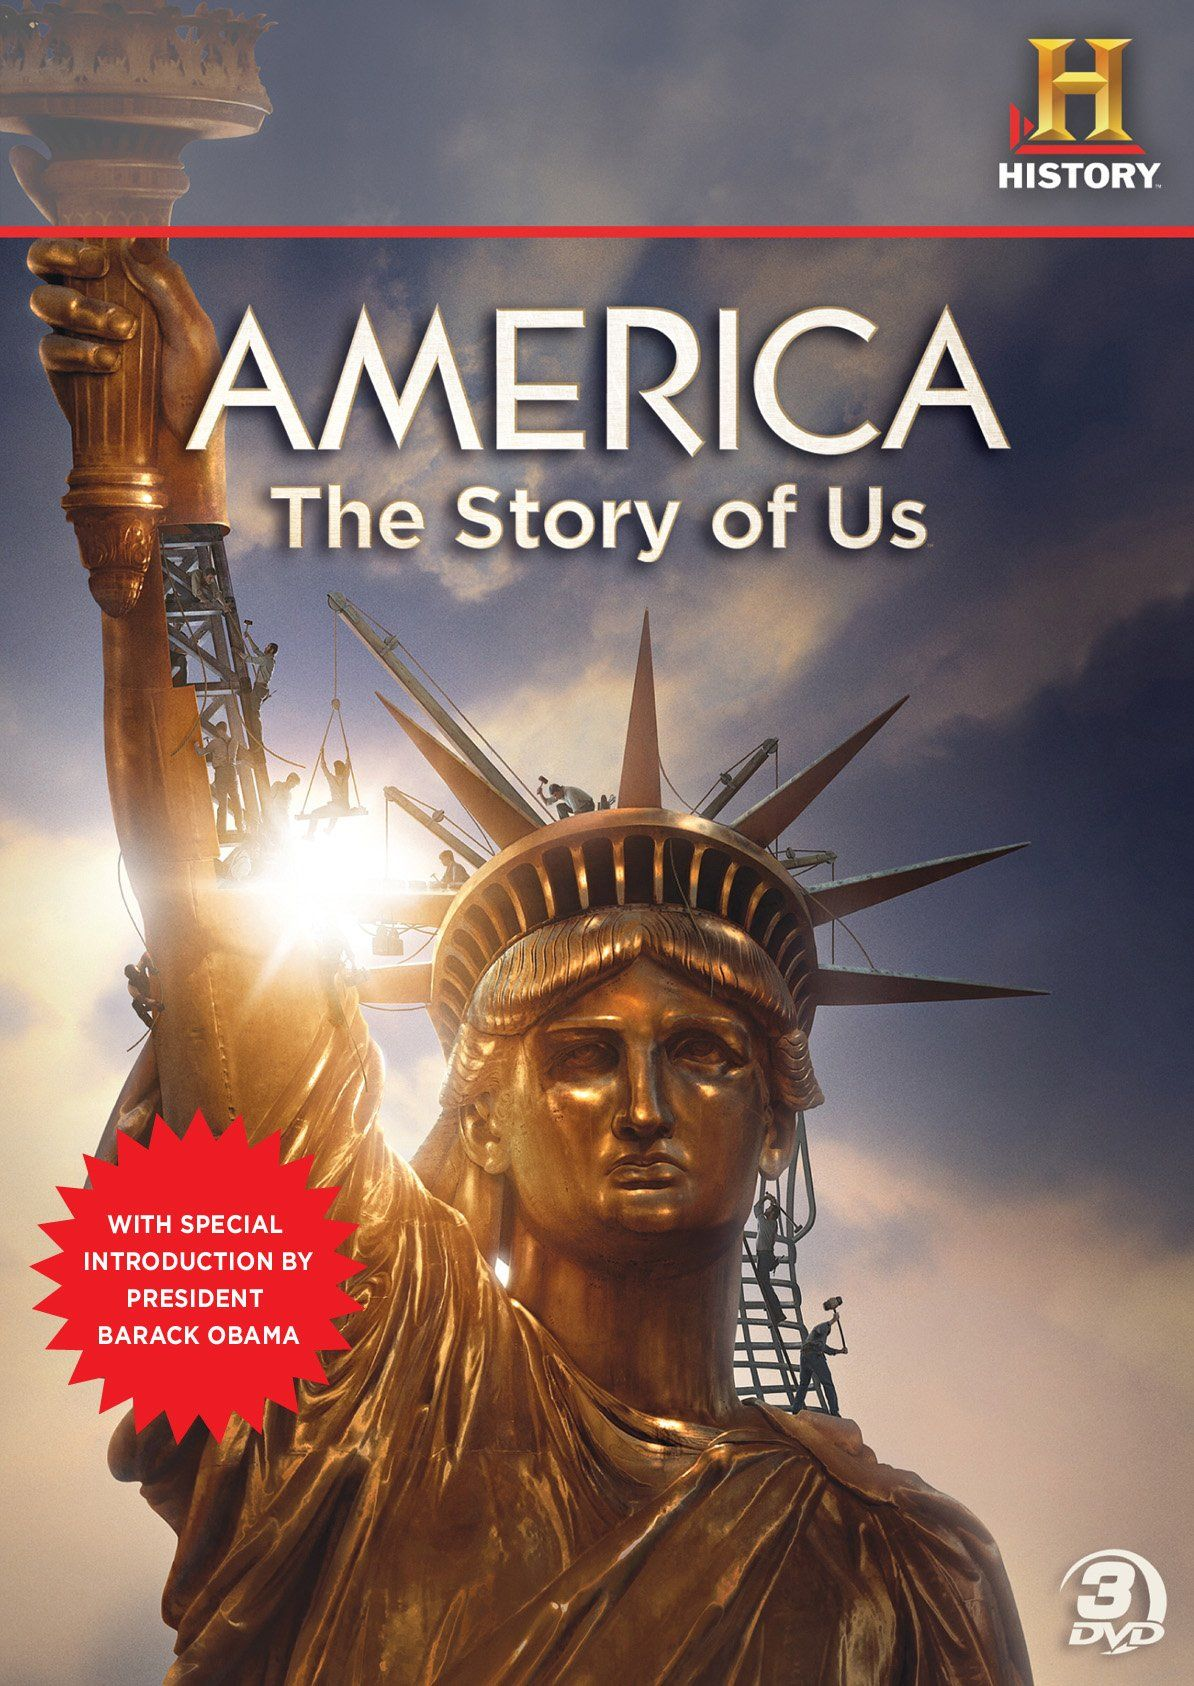 America: The Story of Us: Complete documentary DVD series on the history of  the